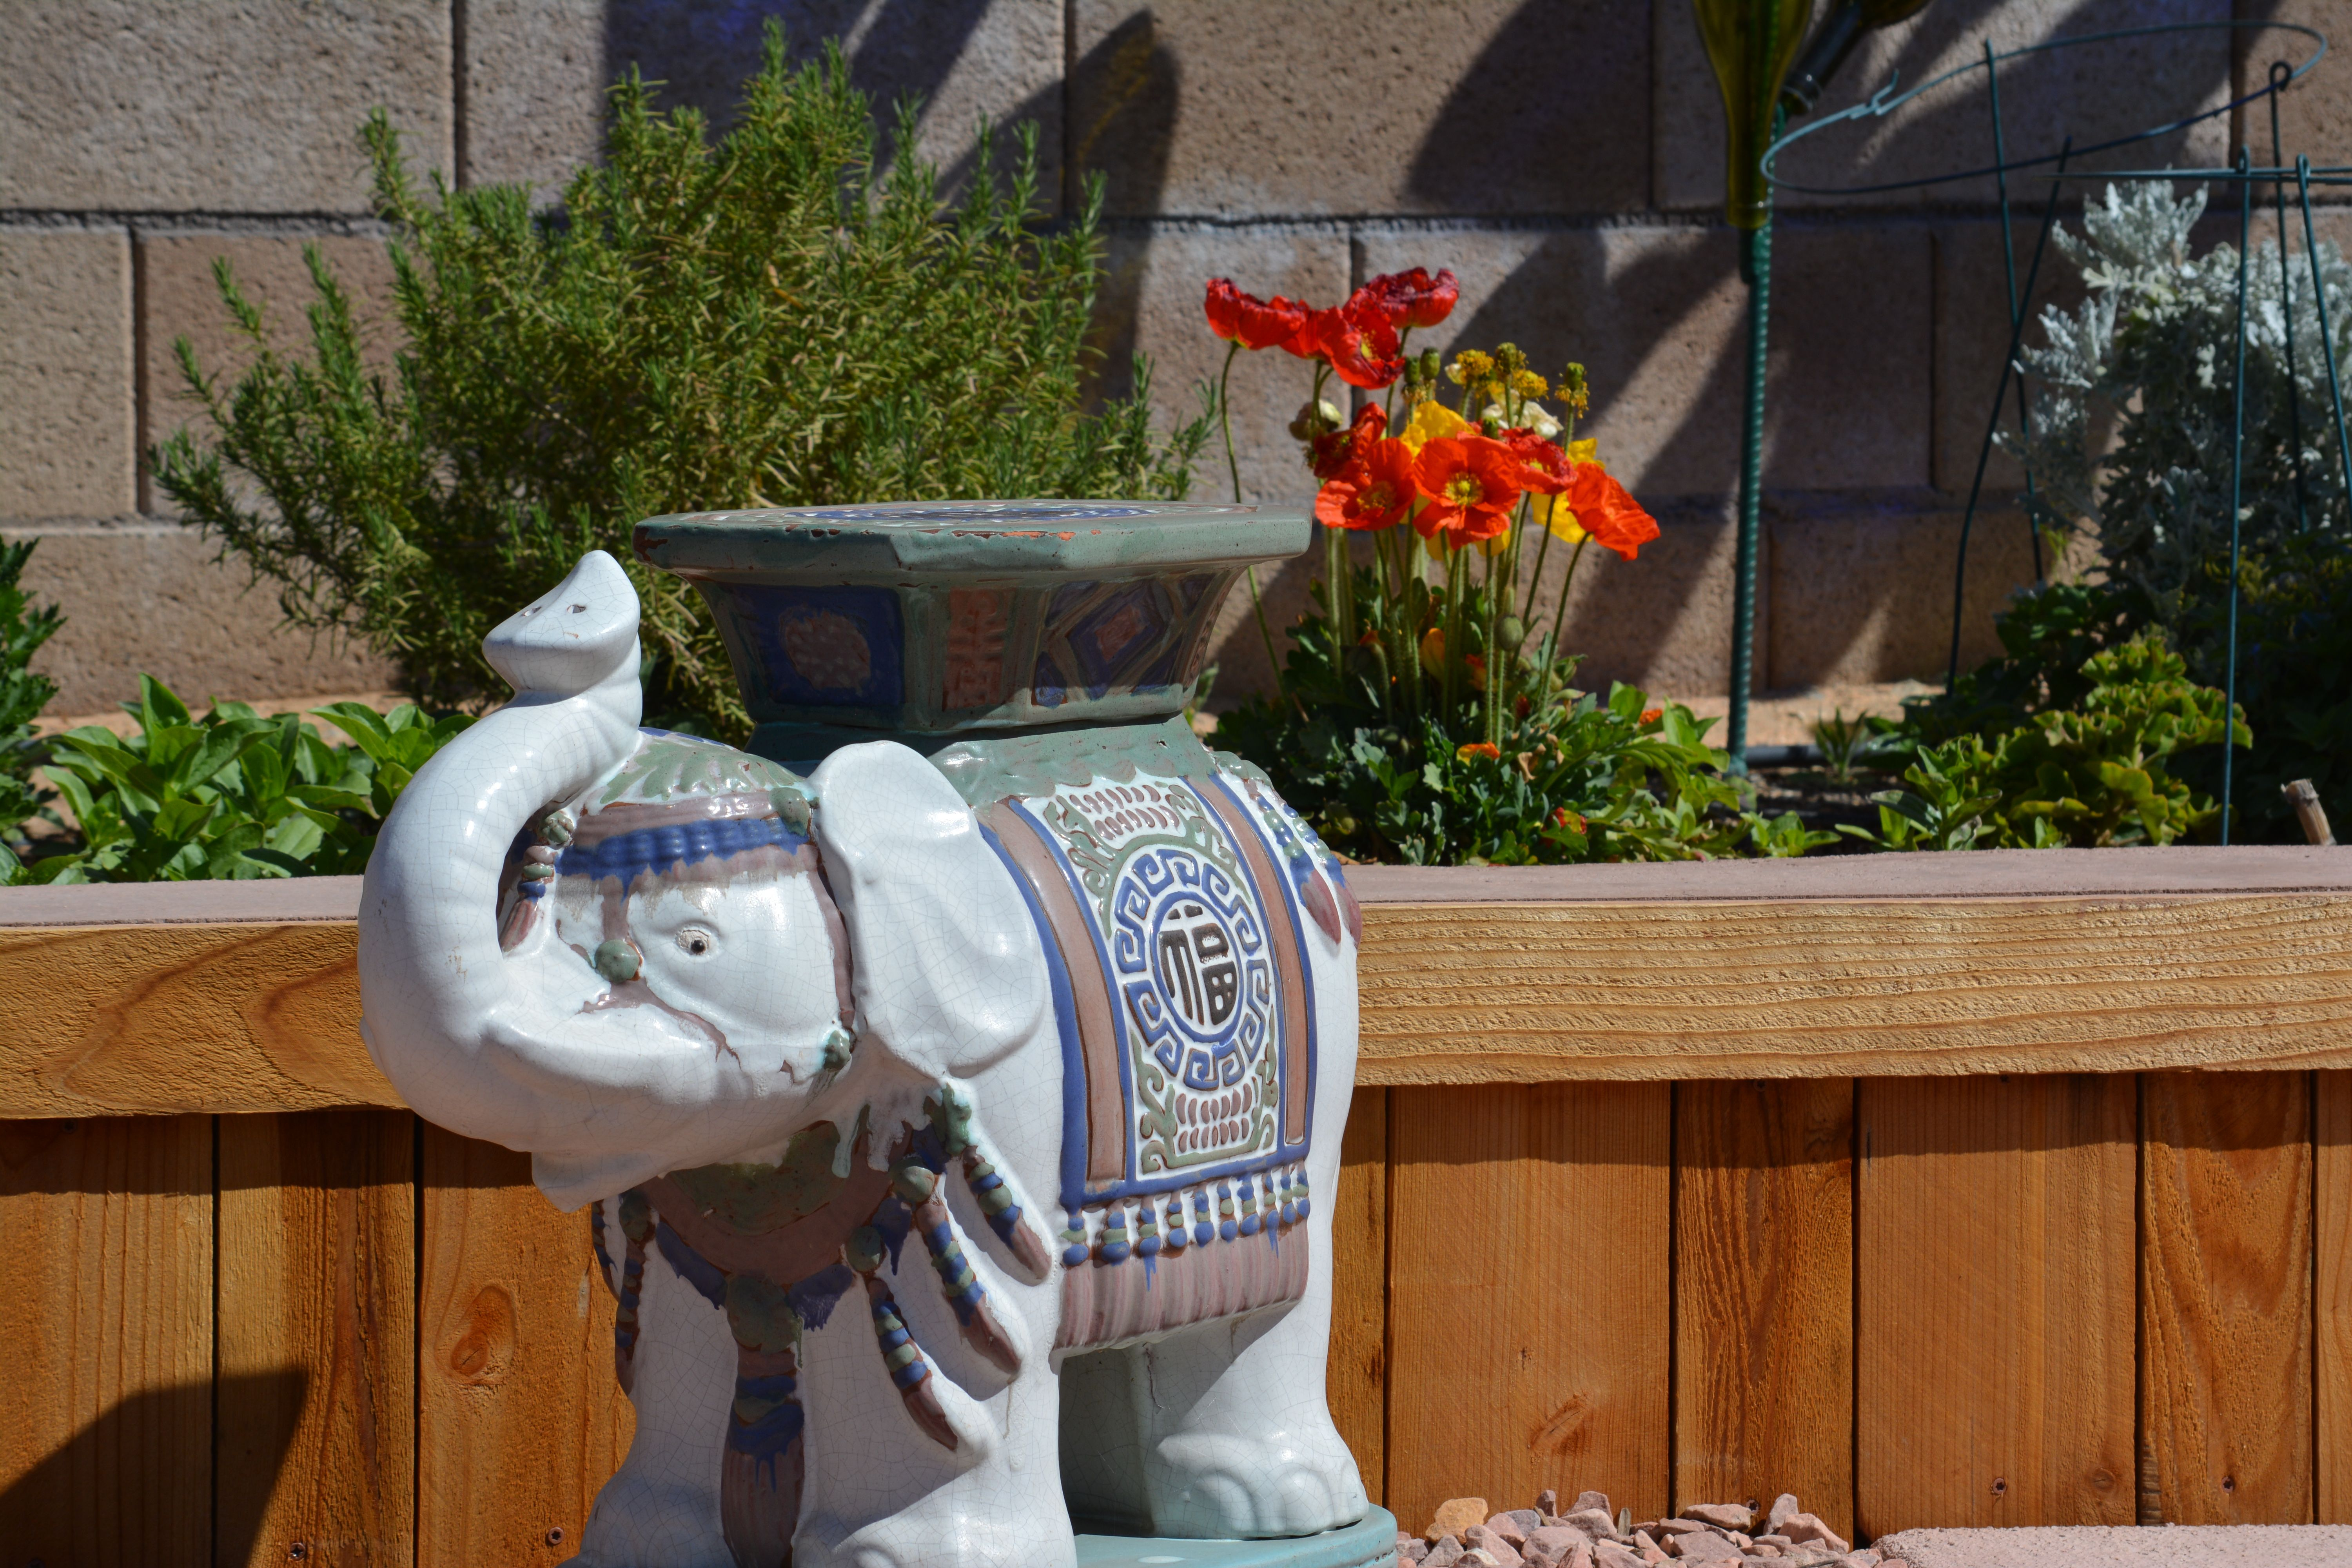 Uncle Ralph's elephant looks good near the poppies.